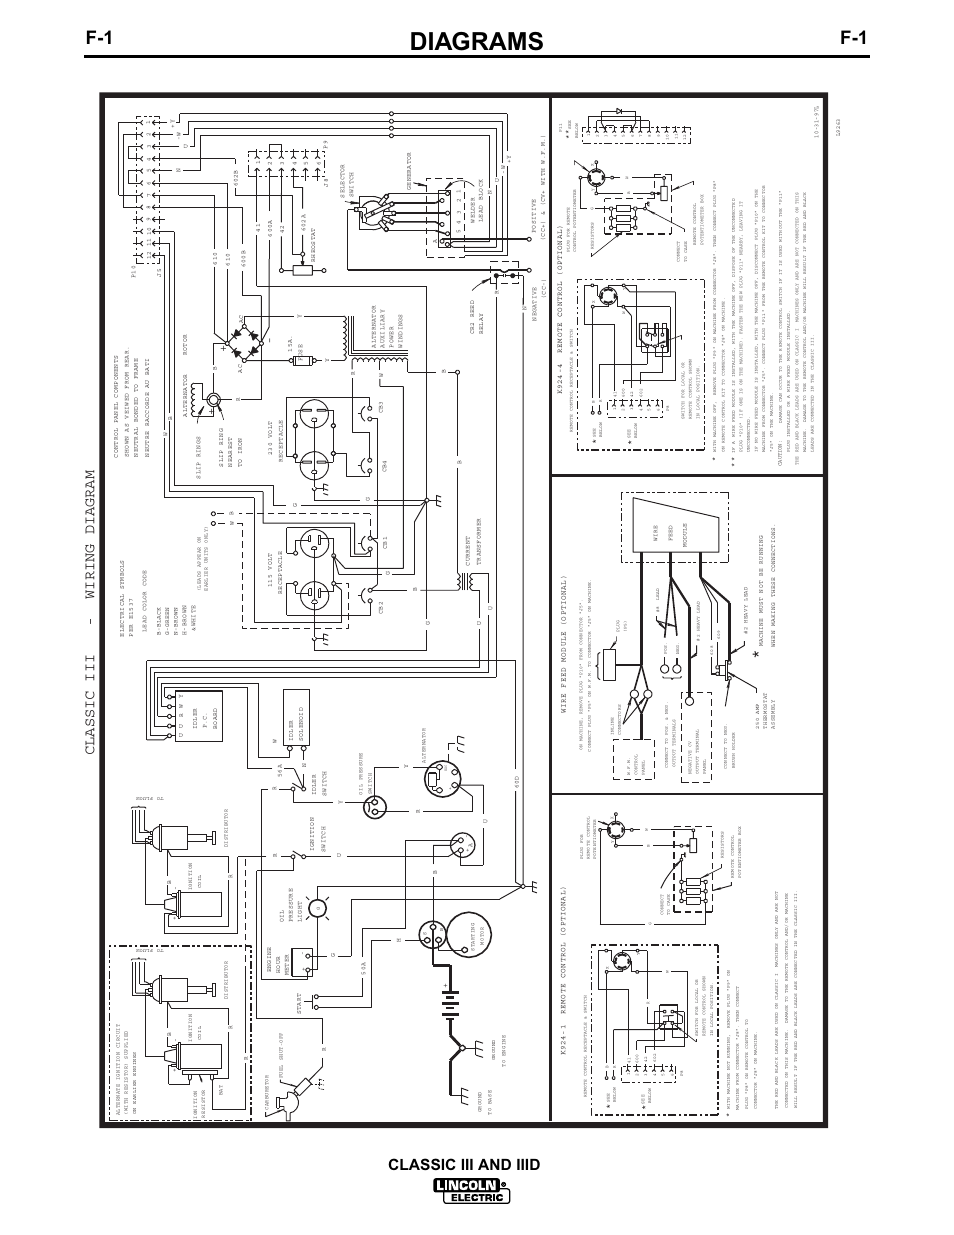 Diagrams, Classic iii and iiid, Classic iii - wiring diagram   Lincoln  Electric IM529 CLASSIC III D User Manual   Page 26 / 34